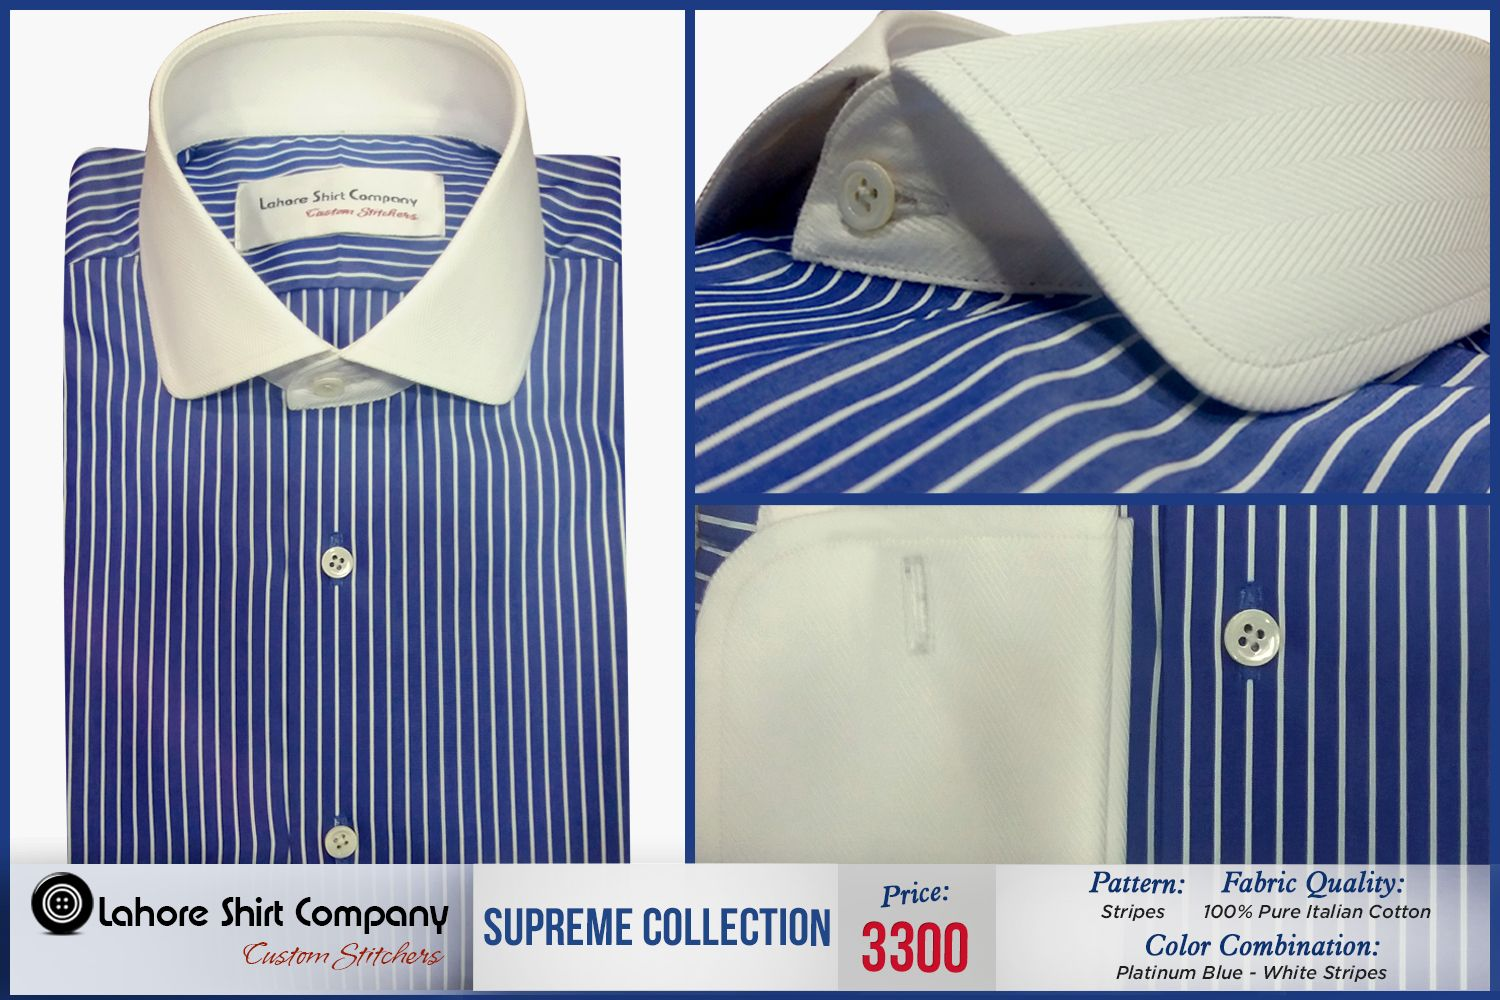 Lahore Shirt Company offers you elegantly designed shirts that will surely enhance your Style.  Our Blue Stripes custom shirts finished with handmade Button hole. Our stylist add classiness by designing it with White herringbone French cuff and spade spread collar.  Order your custom dress shirt by calling us at (042) 35844470 #customshirts #mensfashion #menstyle #fashion #shirts